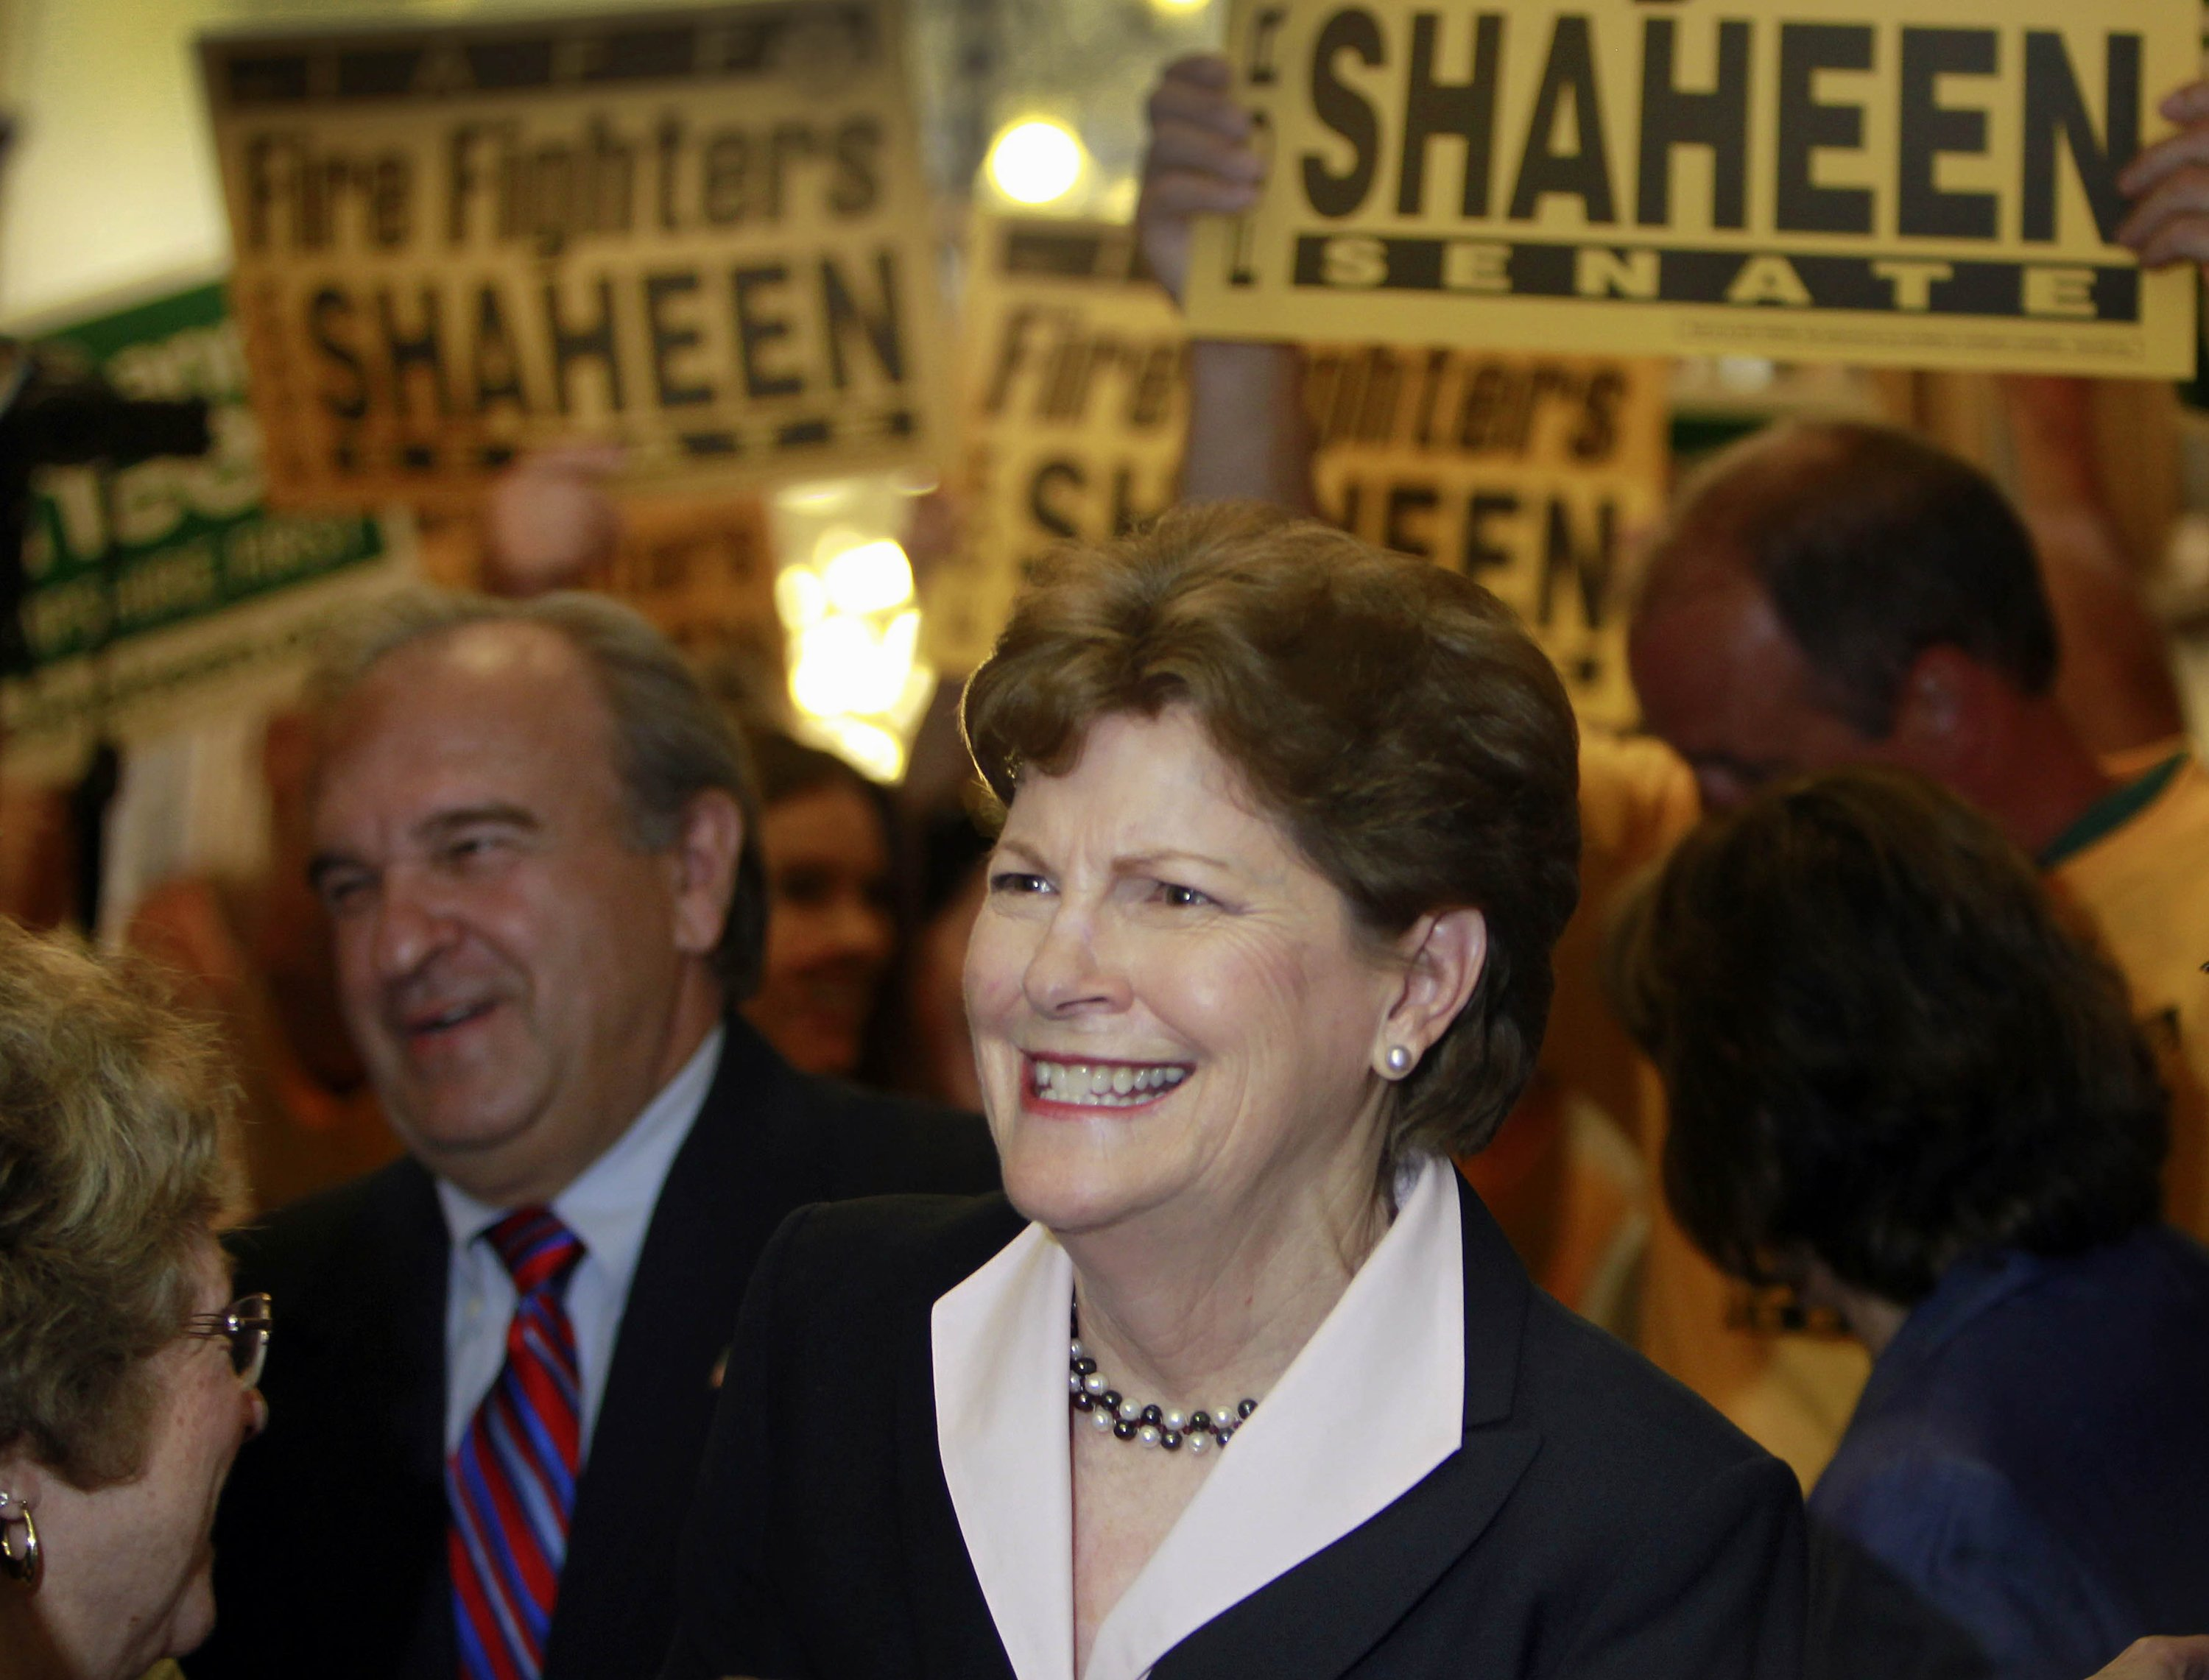 Sen. Jeanne Shaheen D-N.H. is surrounded by supporters  to file her campaign paperwork to seek re-election on June 9, 2014 in Concord, N.H.